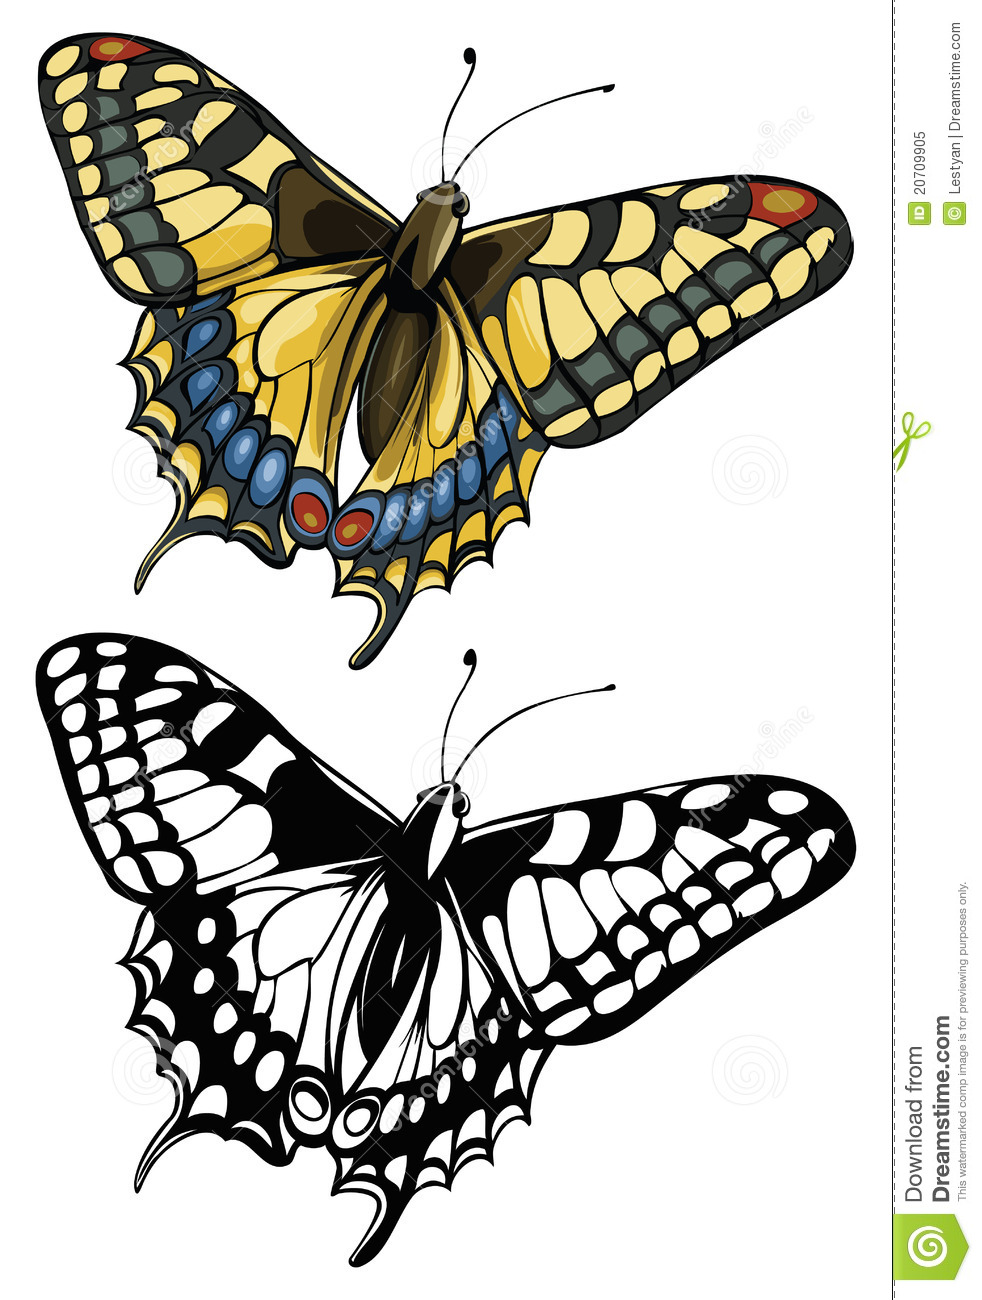 Swallowtail Butterfly clipart #6, Download drawings